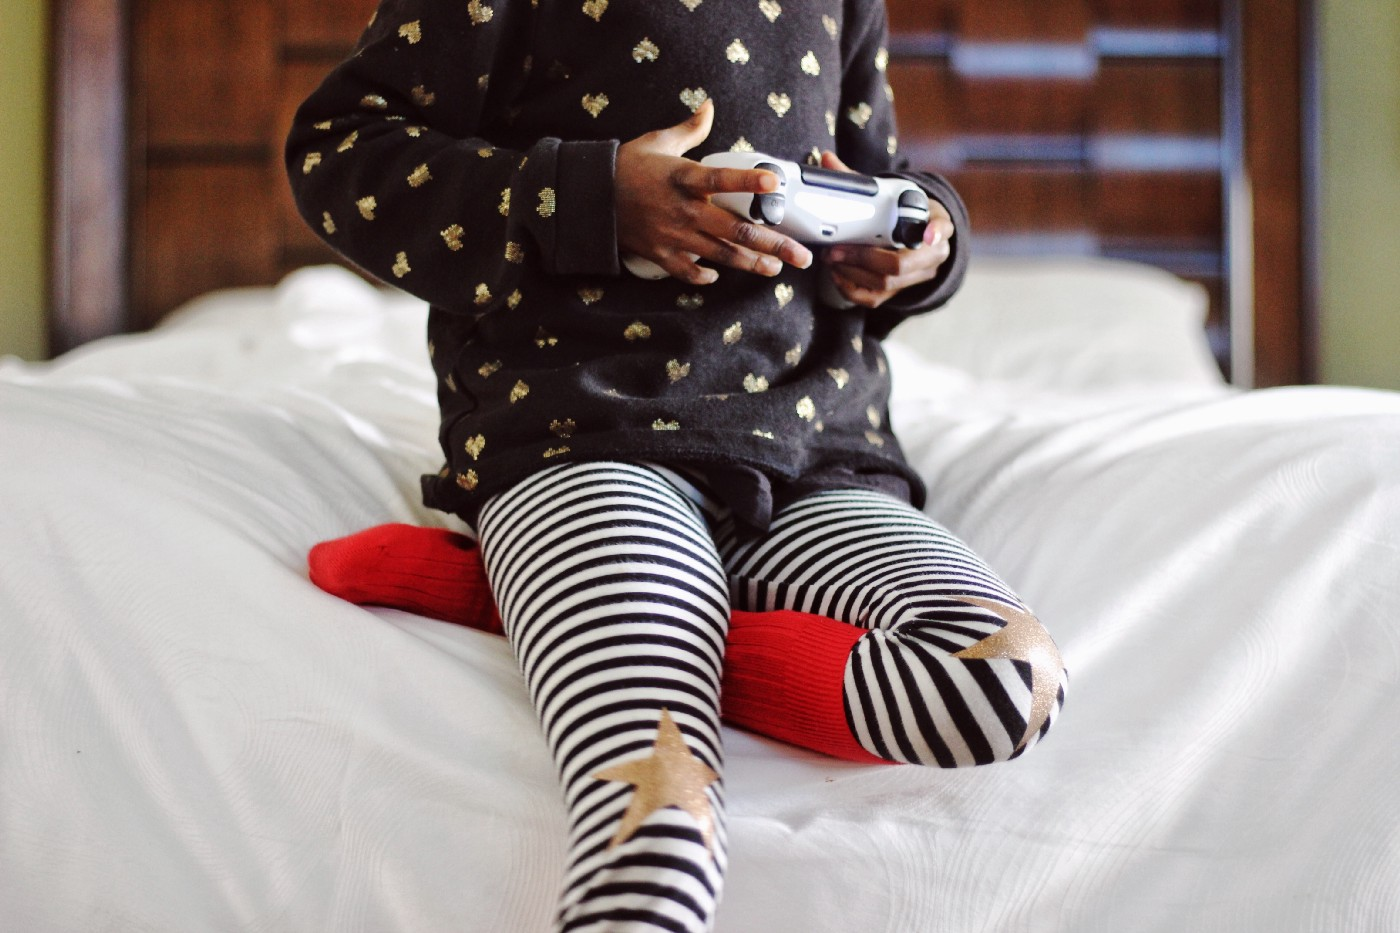 A child plays with a gaming device.